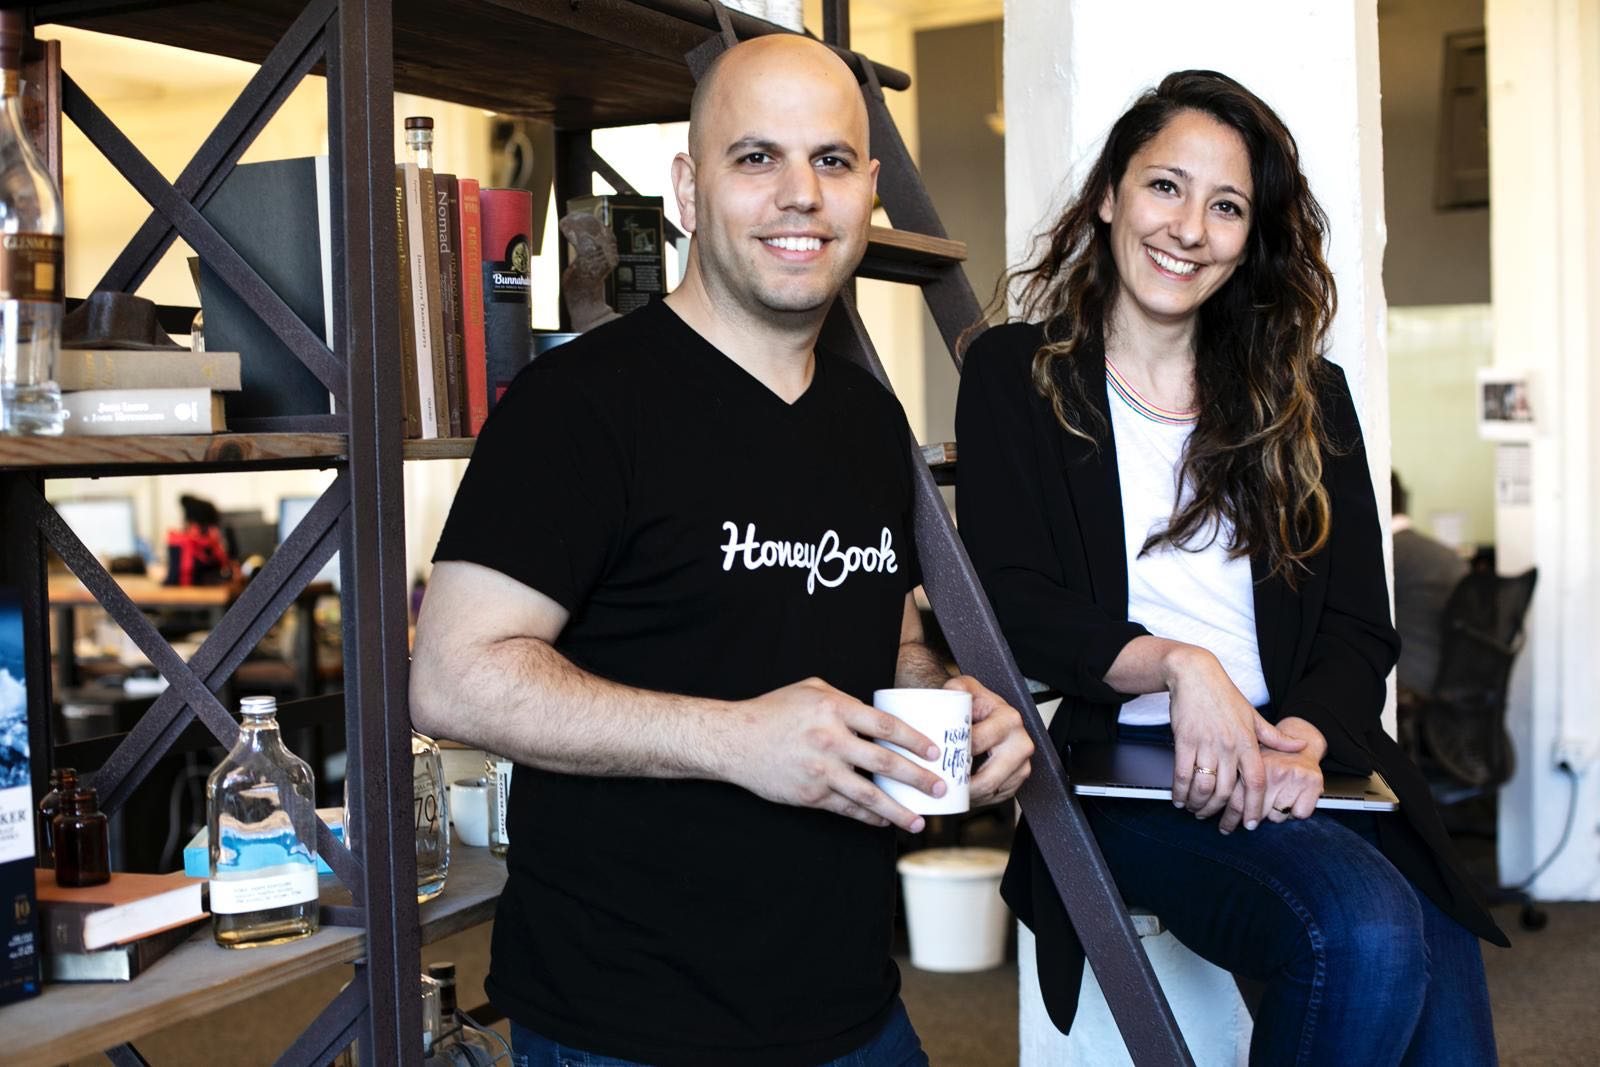 HoneyBook, a client management platform for creative businesses, raises $28M Series C led by Citi Ventures HoneyBook, a client management platform for creative businesses, raises $28M Series C led by Citi Ventures honeybook cofounders oznaama alon 3 1